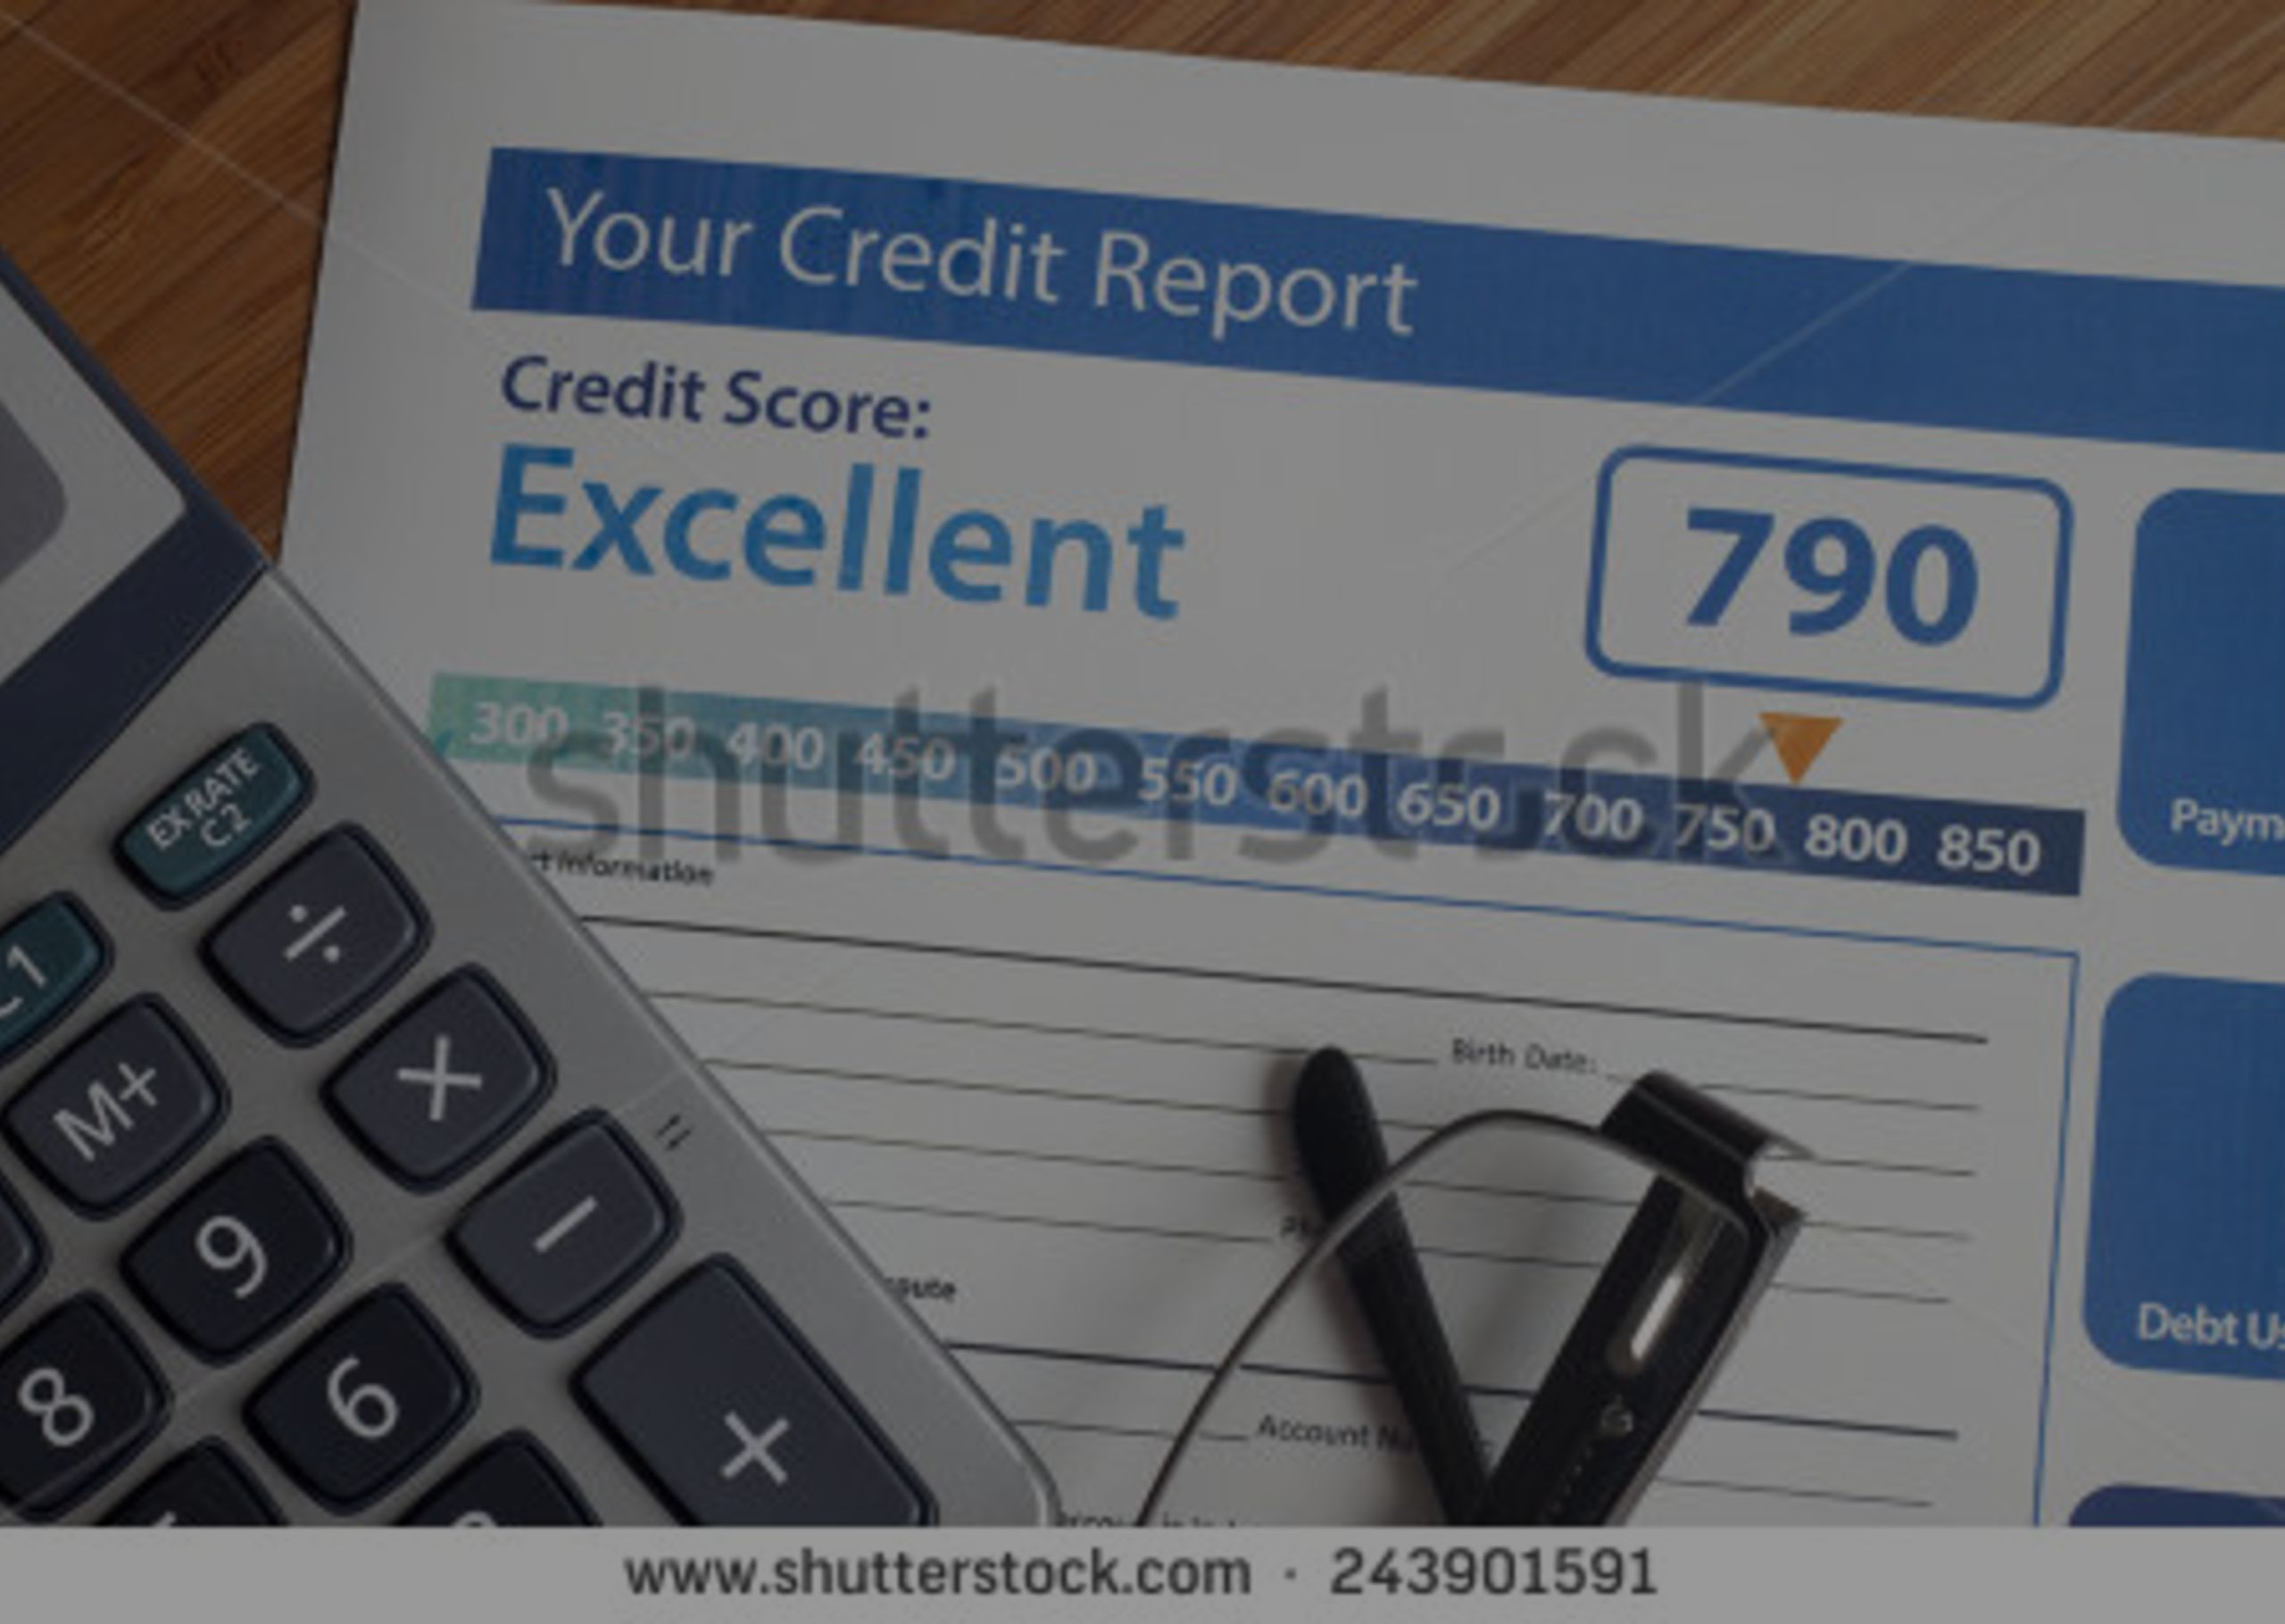 Top Two Tips for Improving Your FICO Credit Score